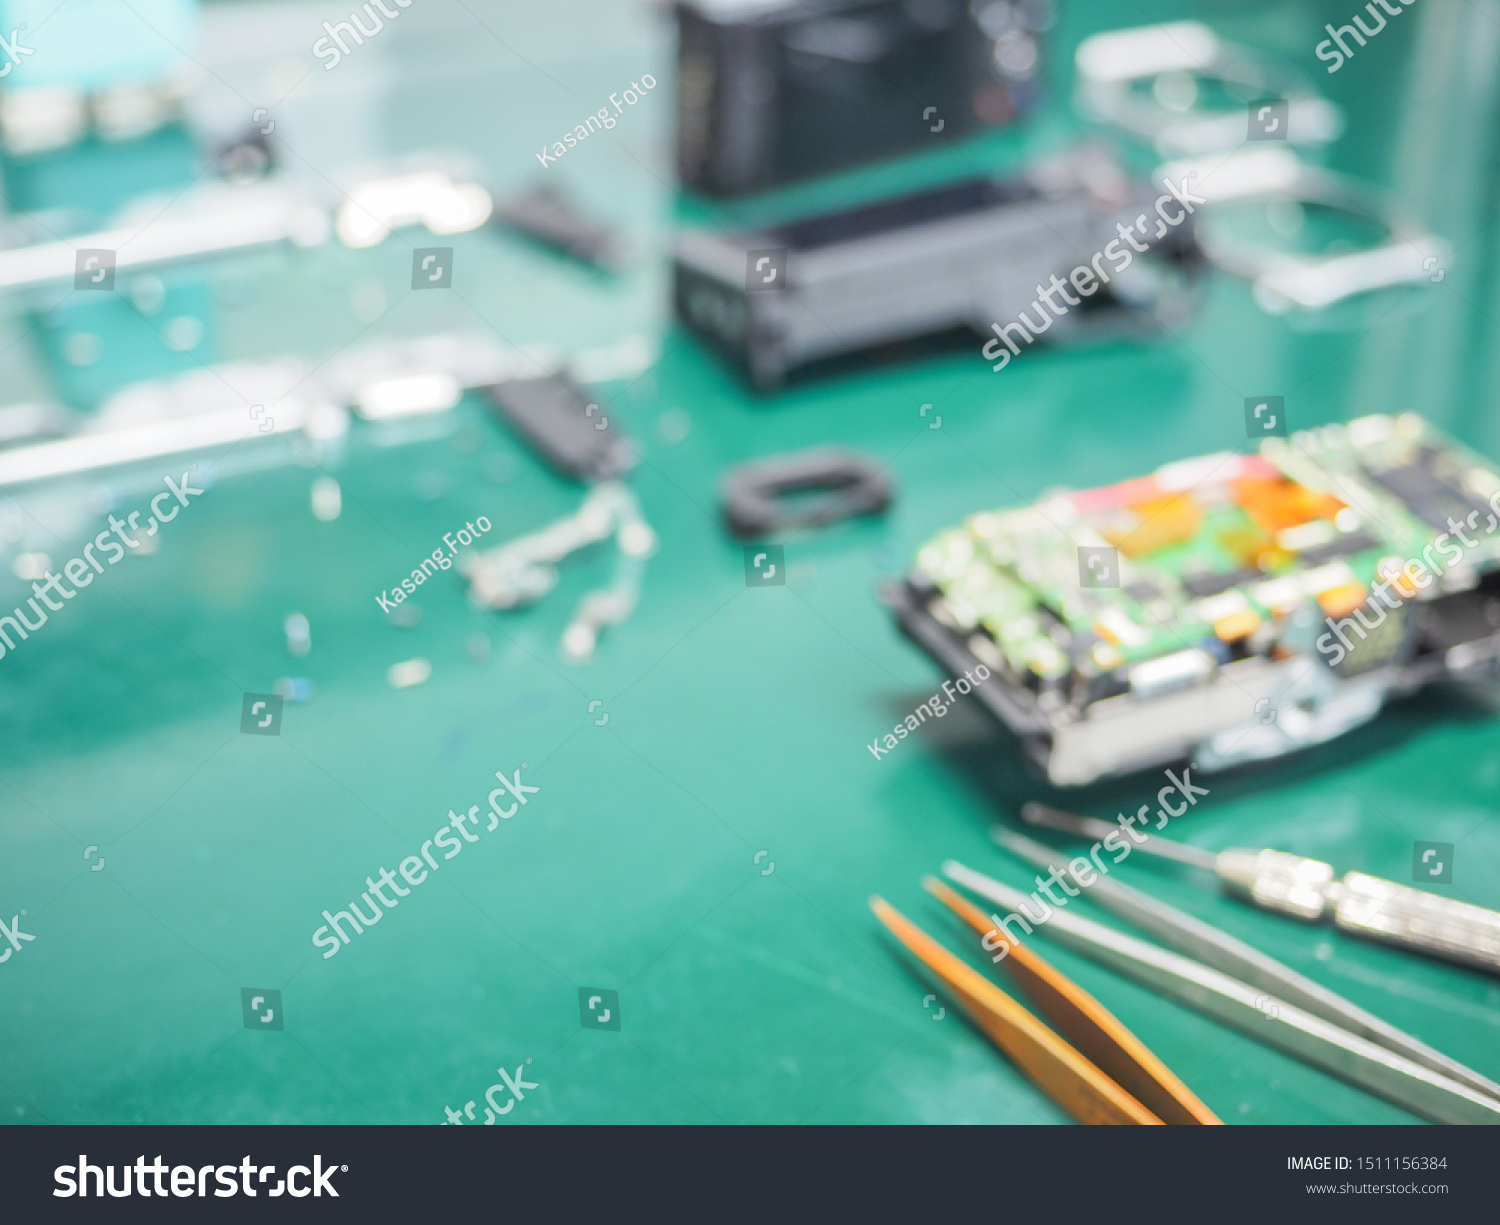 Blur image of workplace in laboratory with needed equipment and electronics device, Abstract blurred of Repair of electronic devices, Repairing and service concept. #1511156384